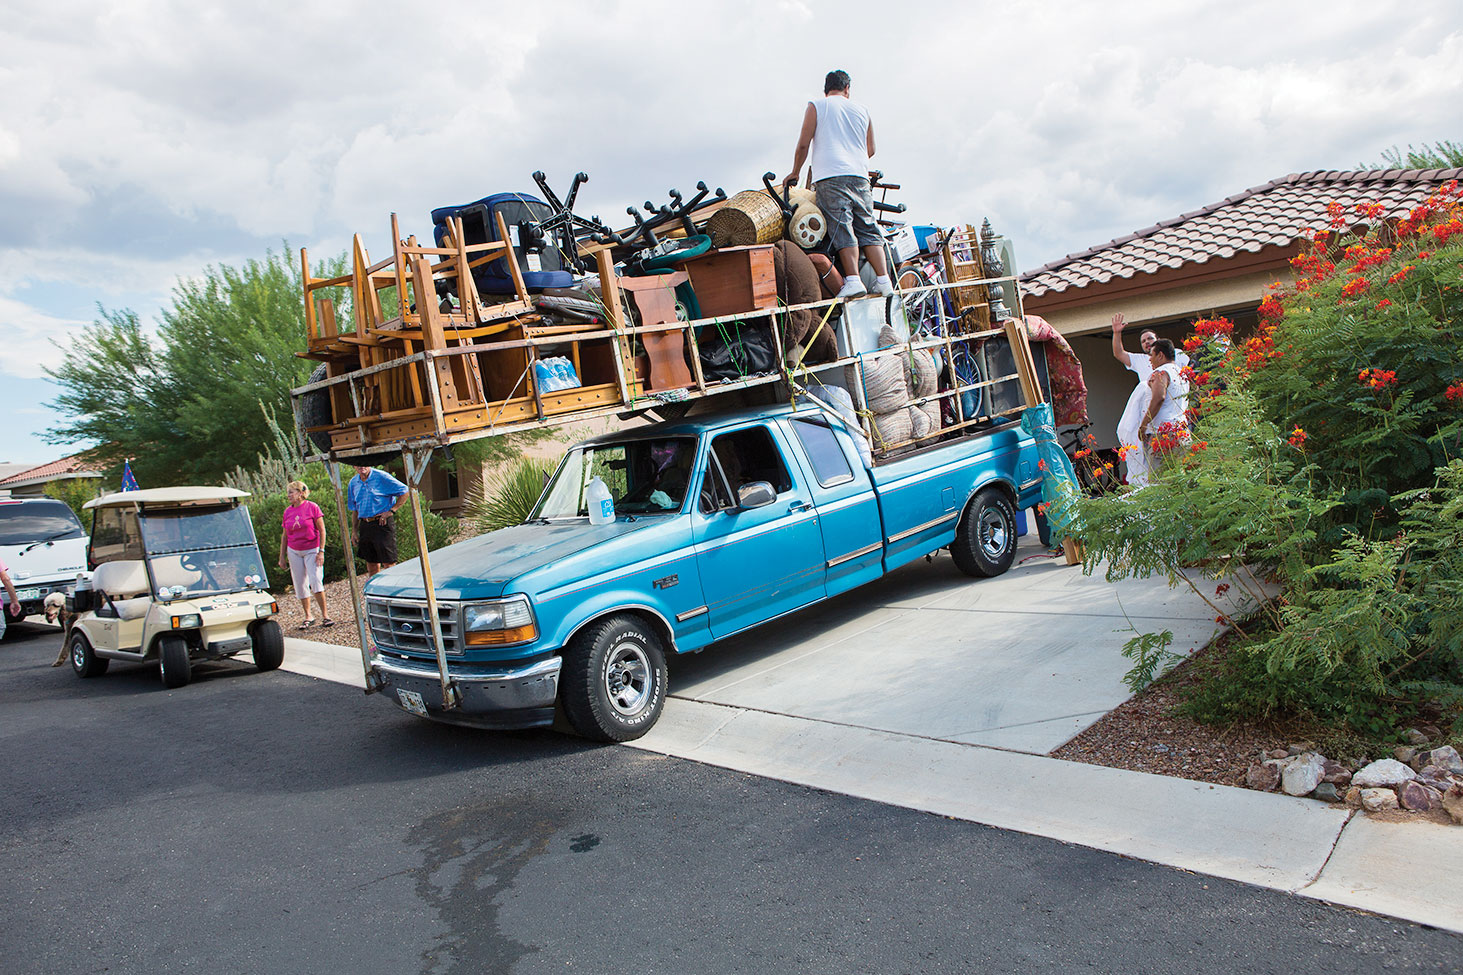 Third Place: Ken Haley - Moving Day